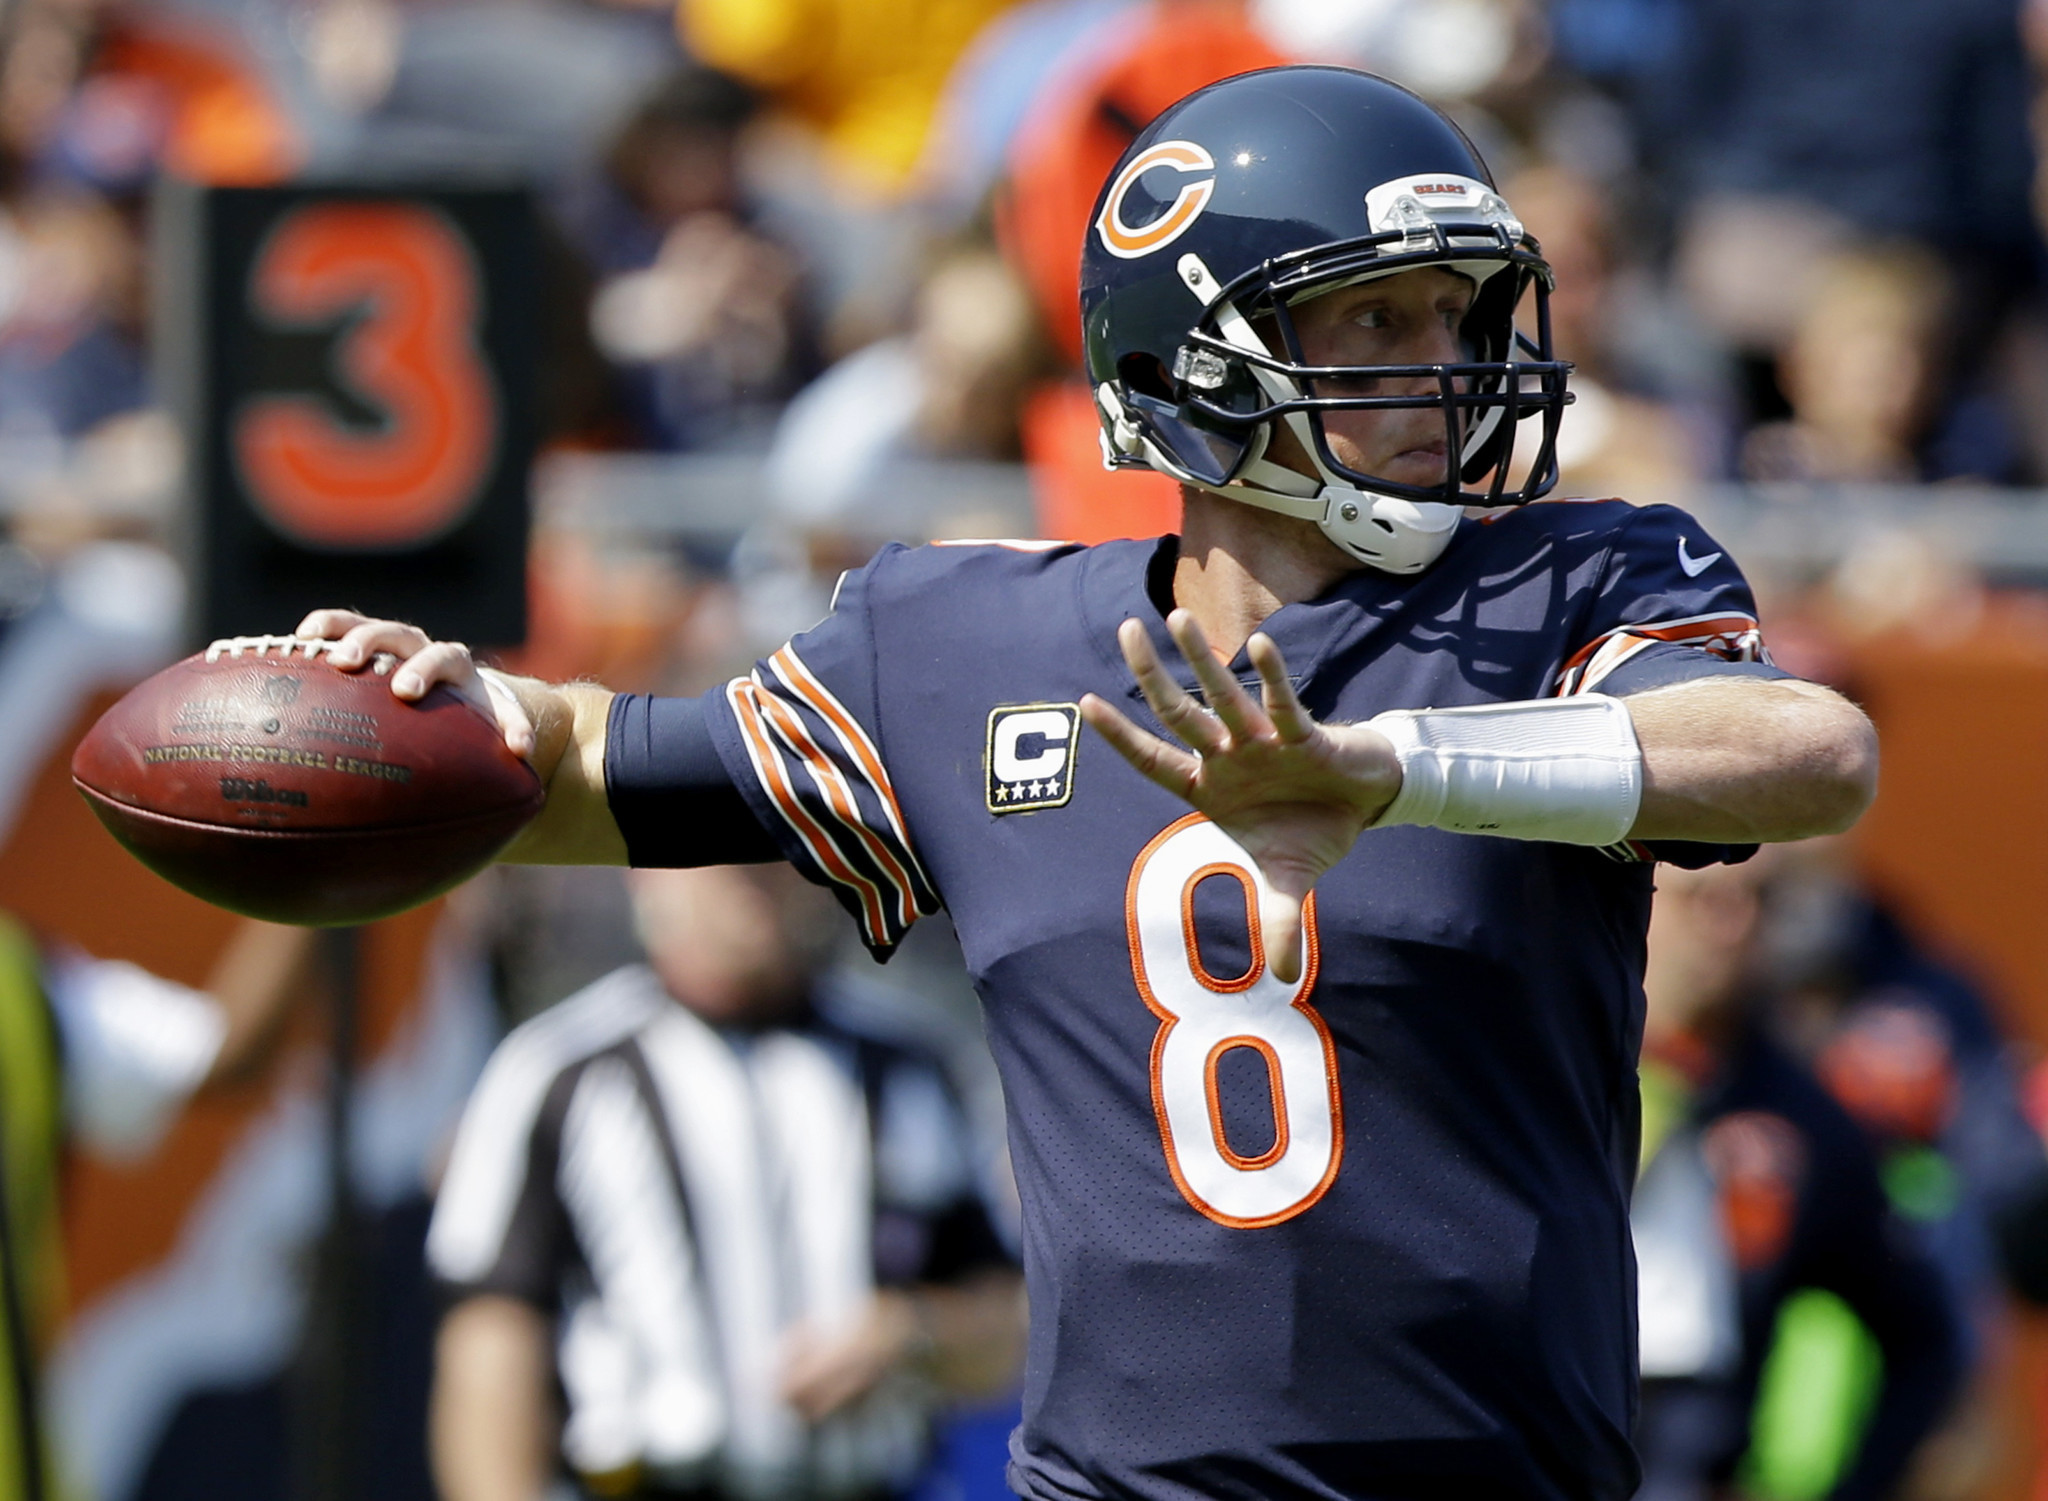 Chicago Bears quarterback Mike Glennon throws during the first half of a game against the Atlanta Falcons on Sept. 10. (Michael Conroy / Associated Press)